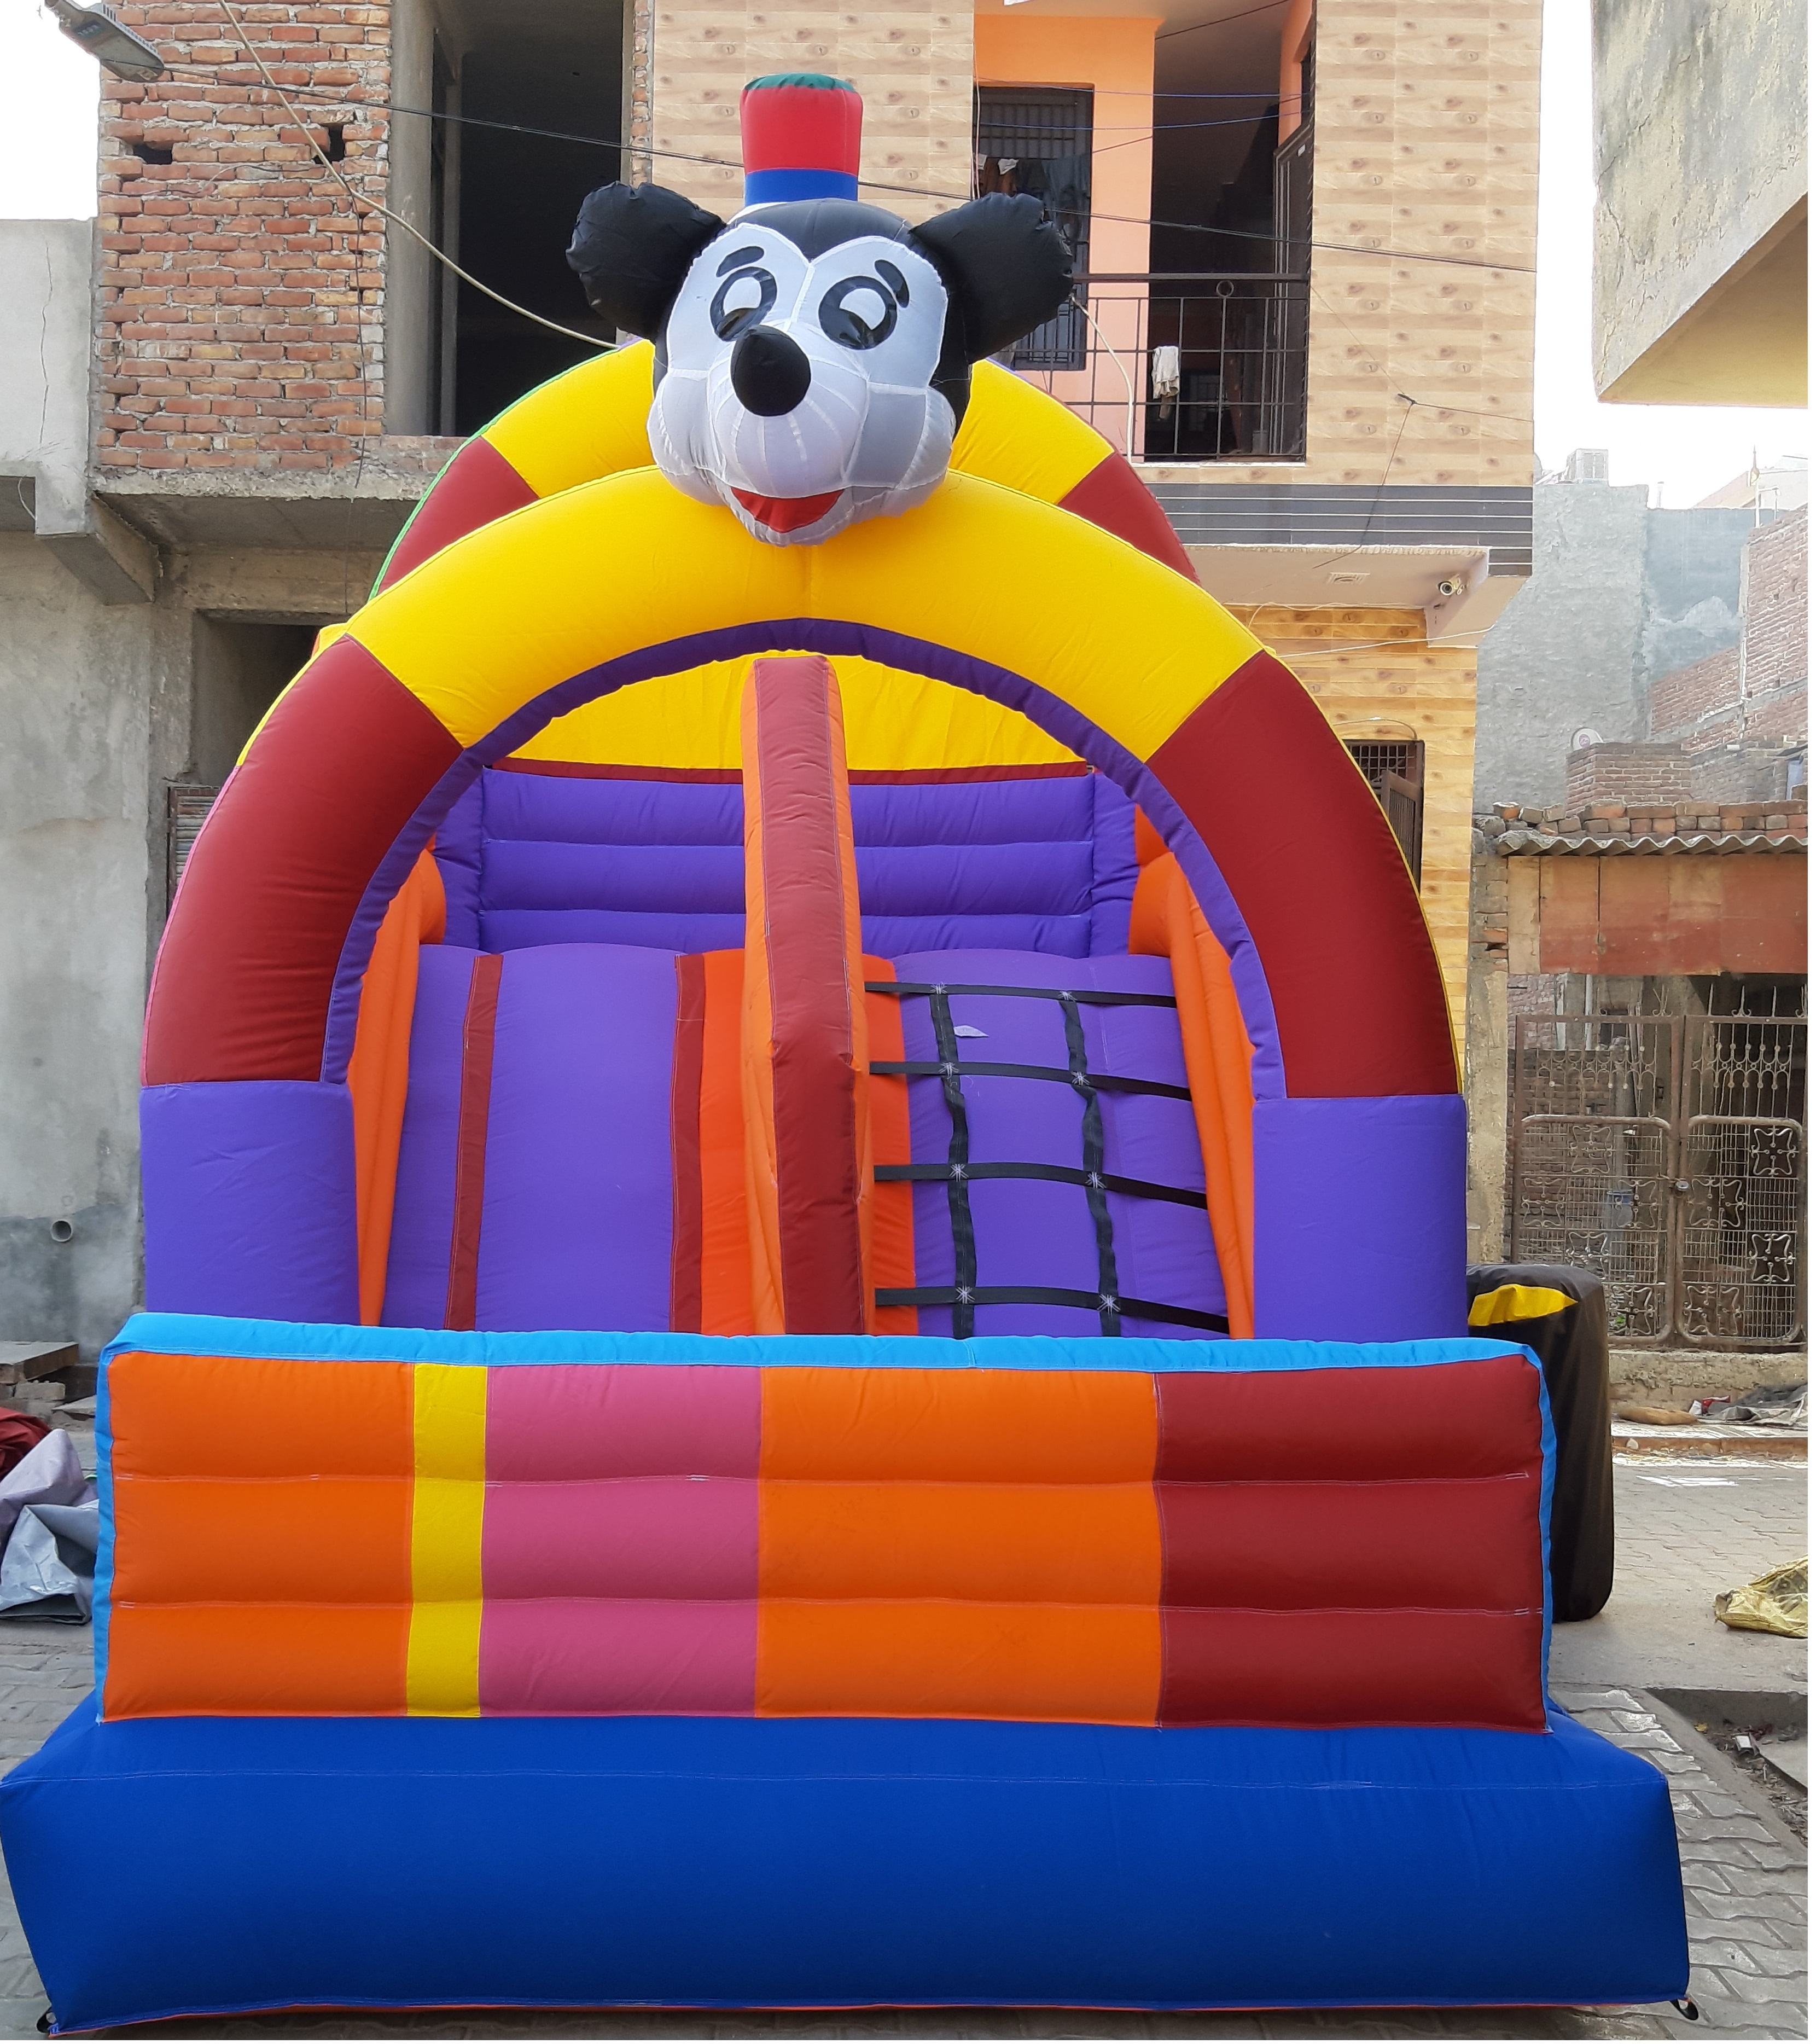 Mickey Mouse Bouncy Castles